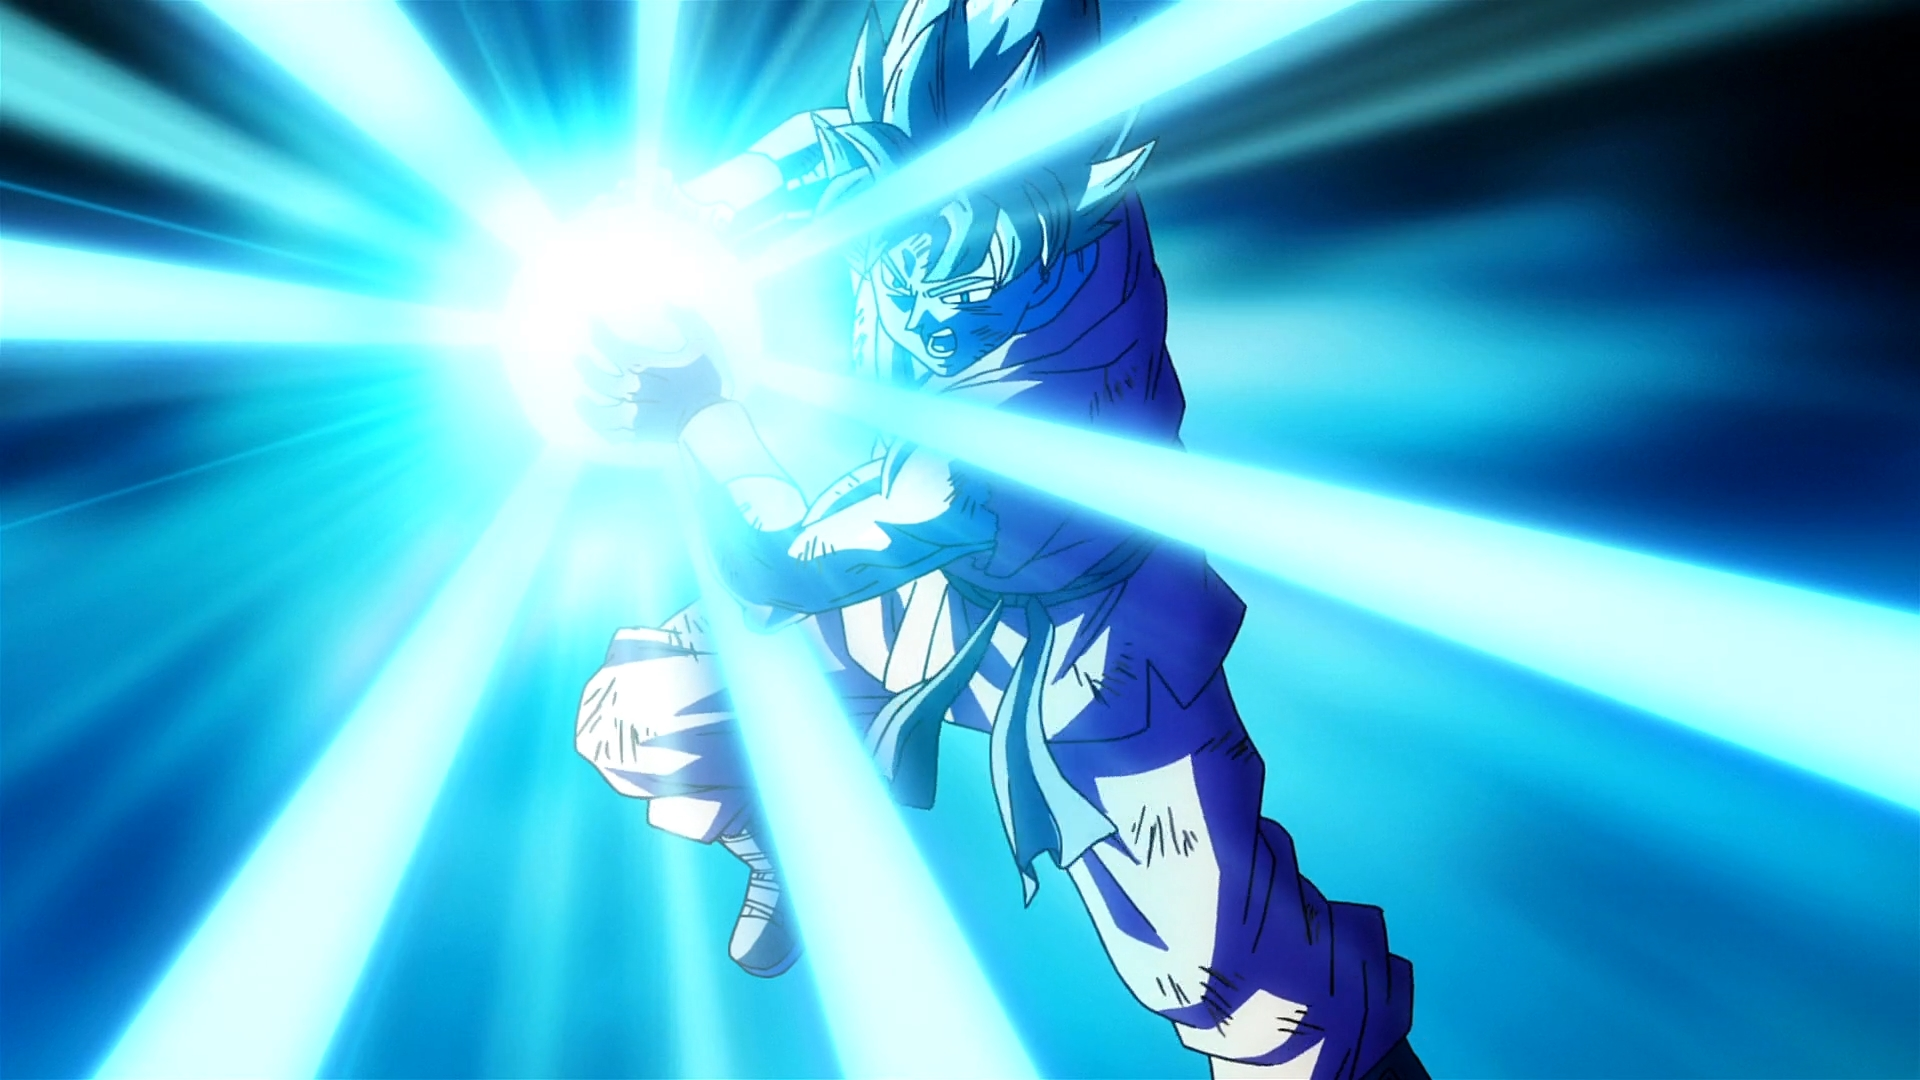 God Kamehameha | Dragon Ball Wiki | FANDOM powered by Wikia | 1920 x 1080 jpeg 815kB